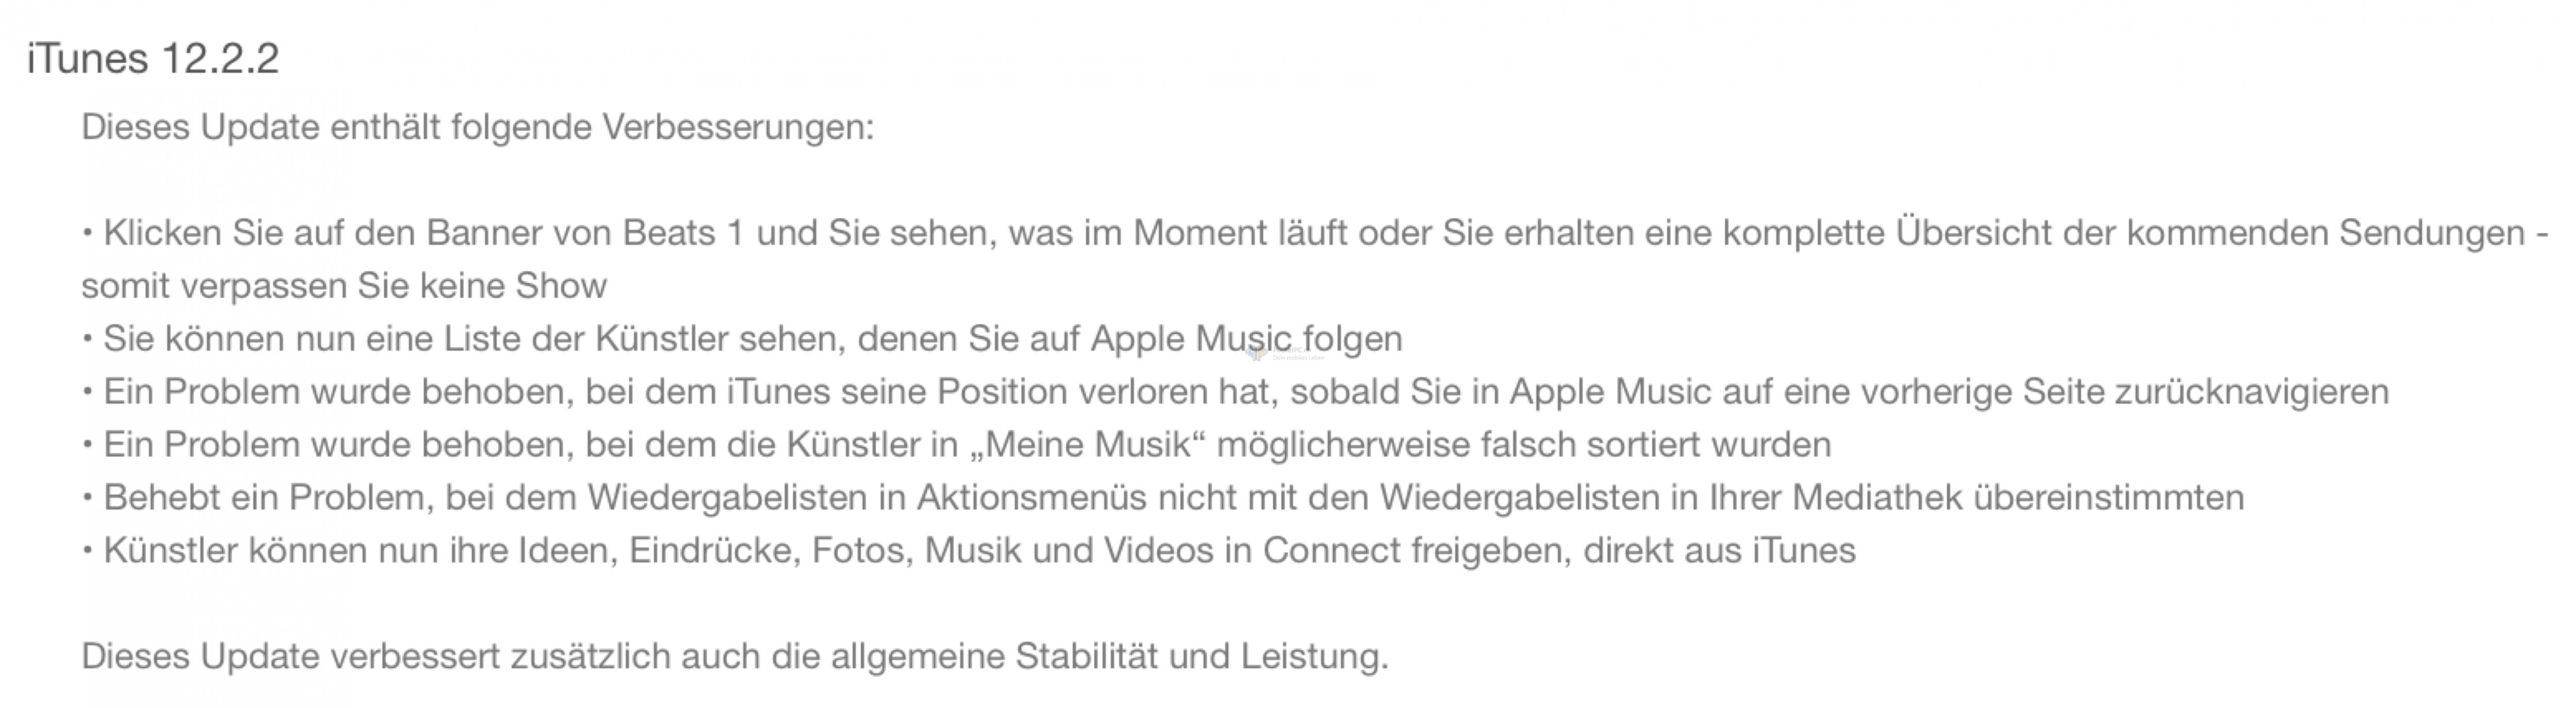 Itunes-Updates-bild-2.jpg